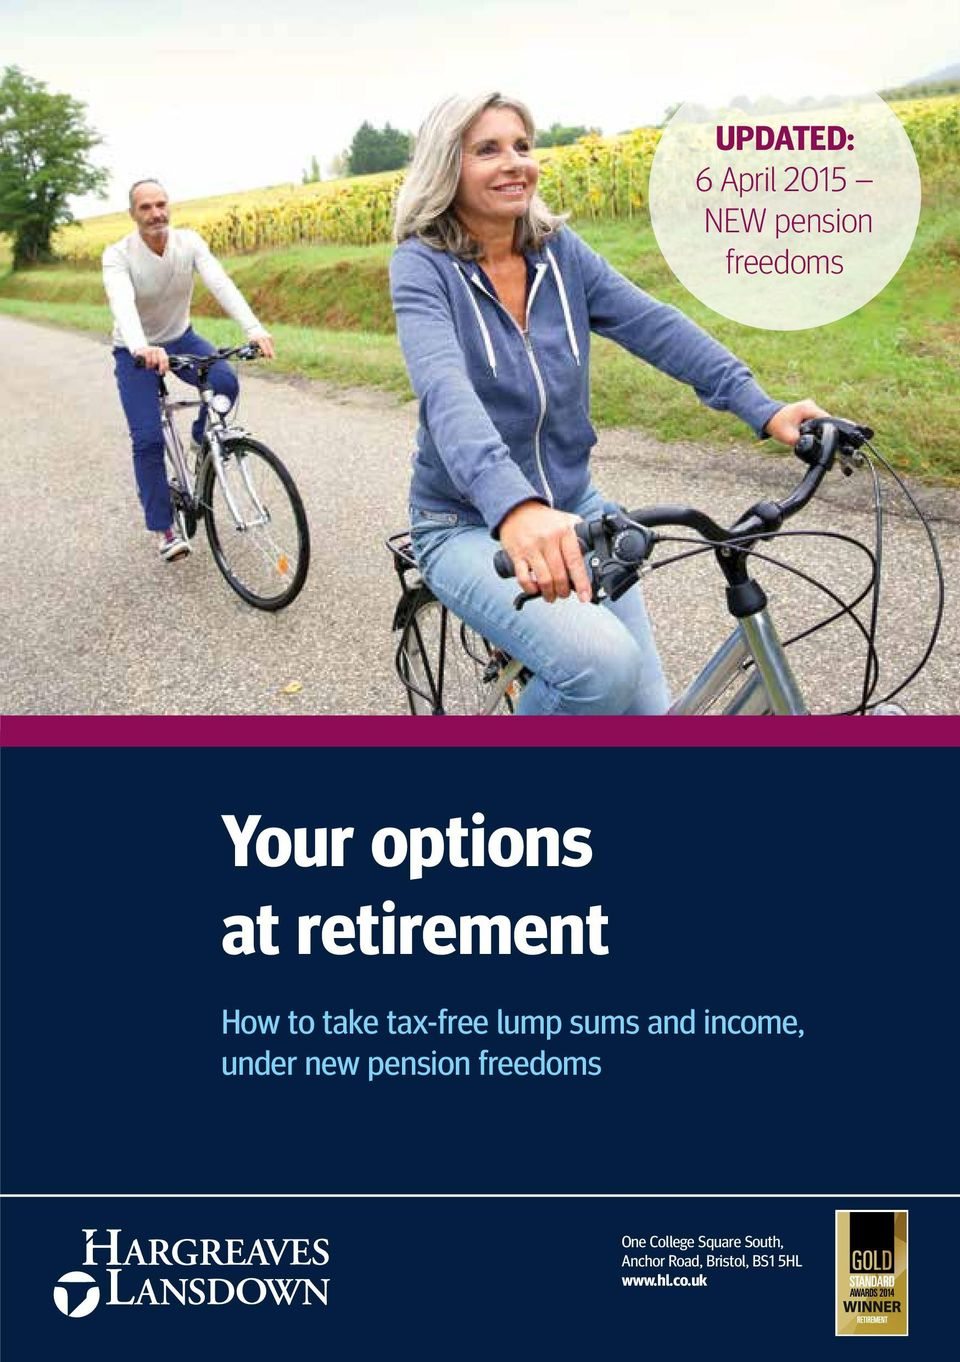 sums and income, under new pension freedoms One